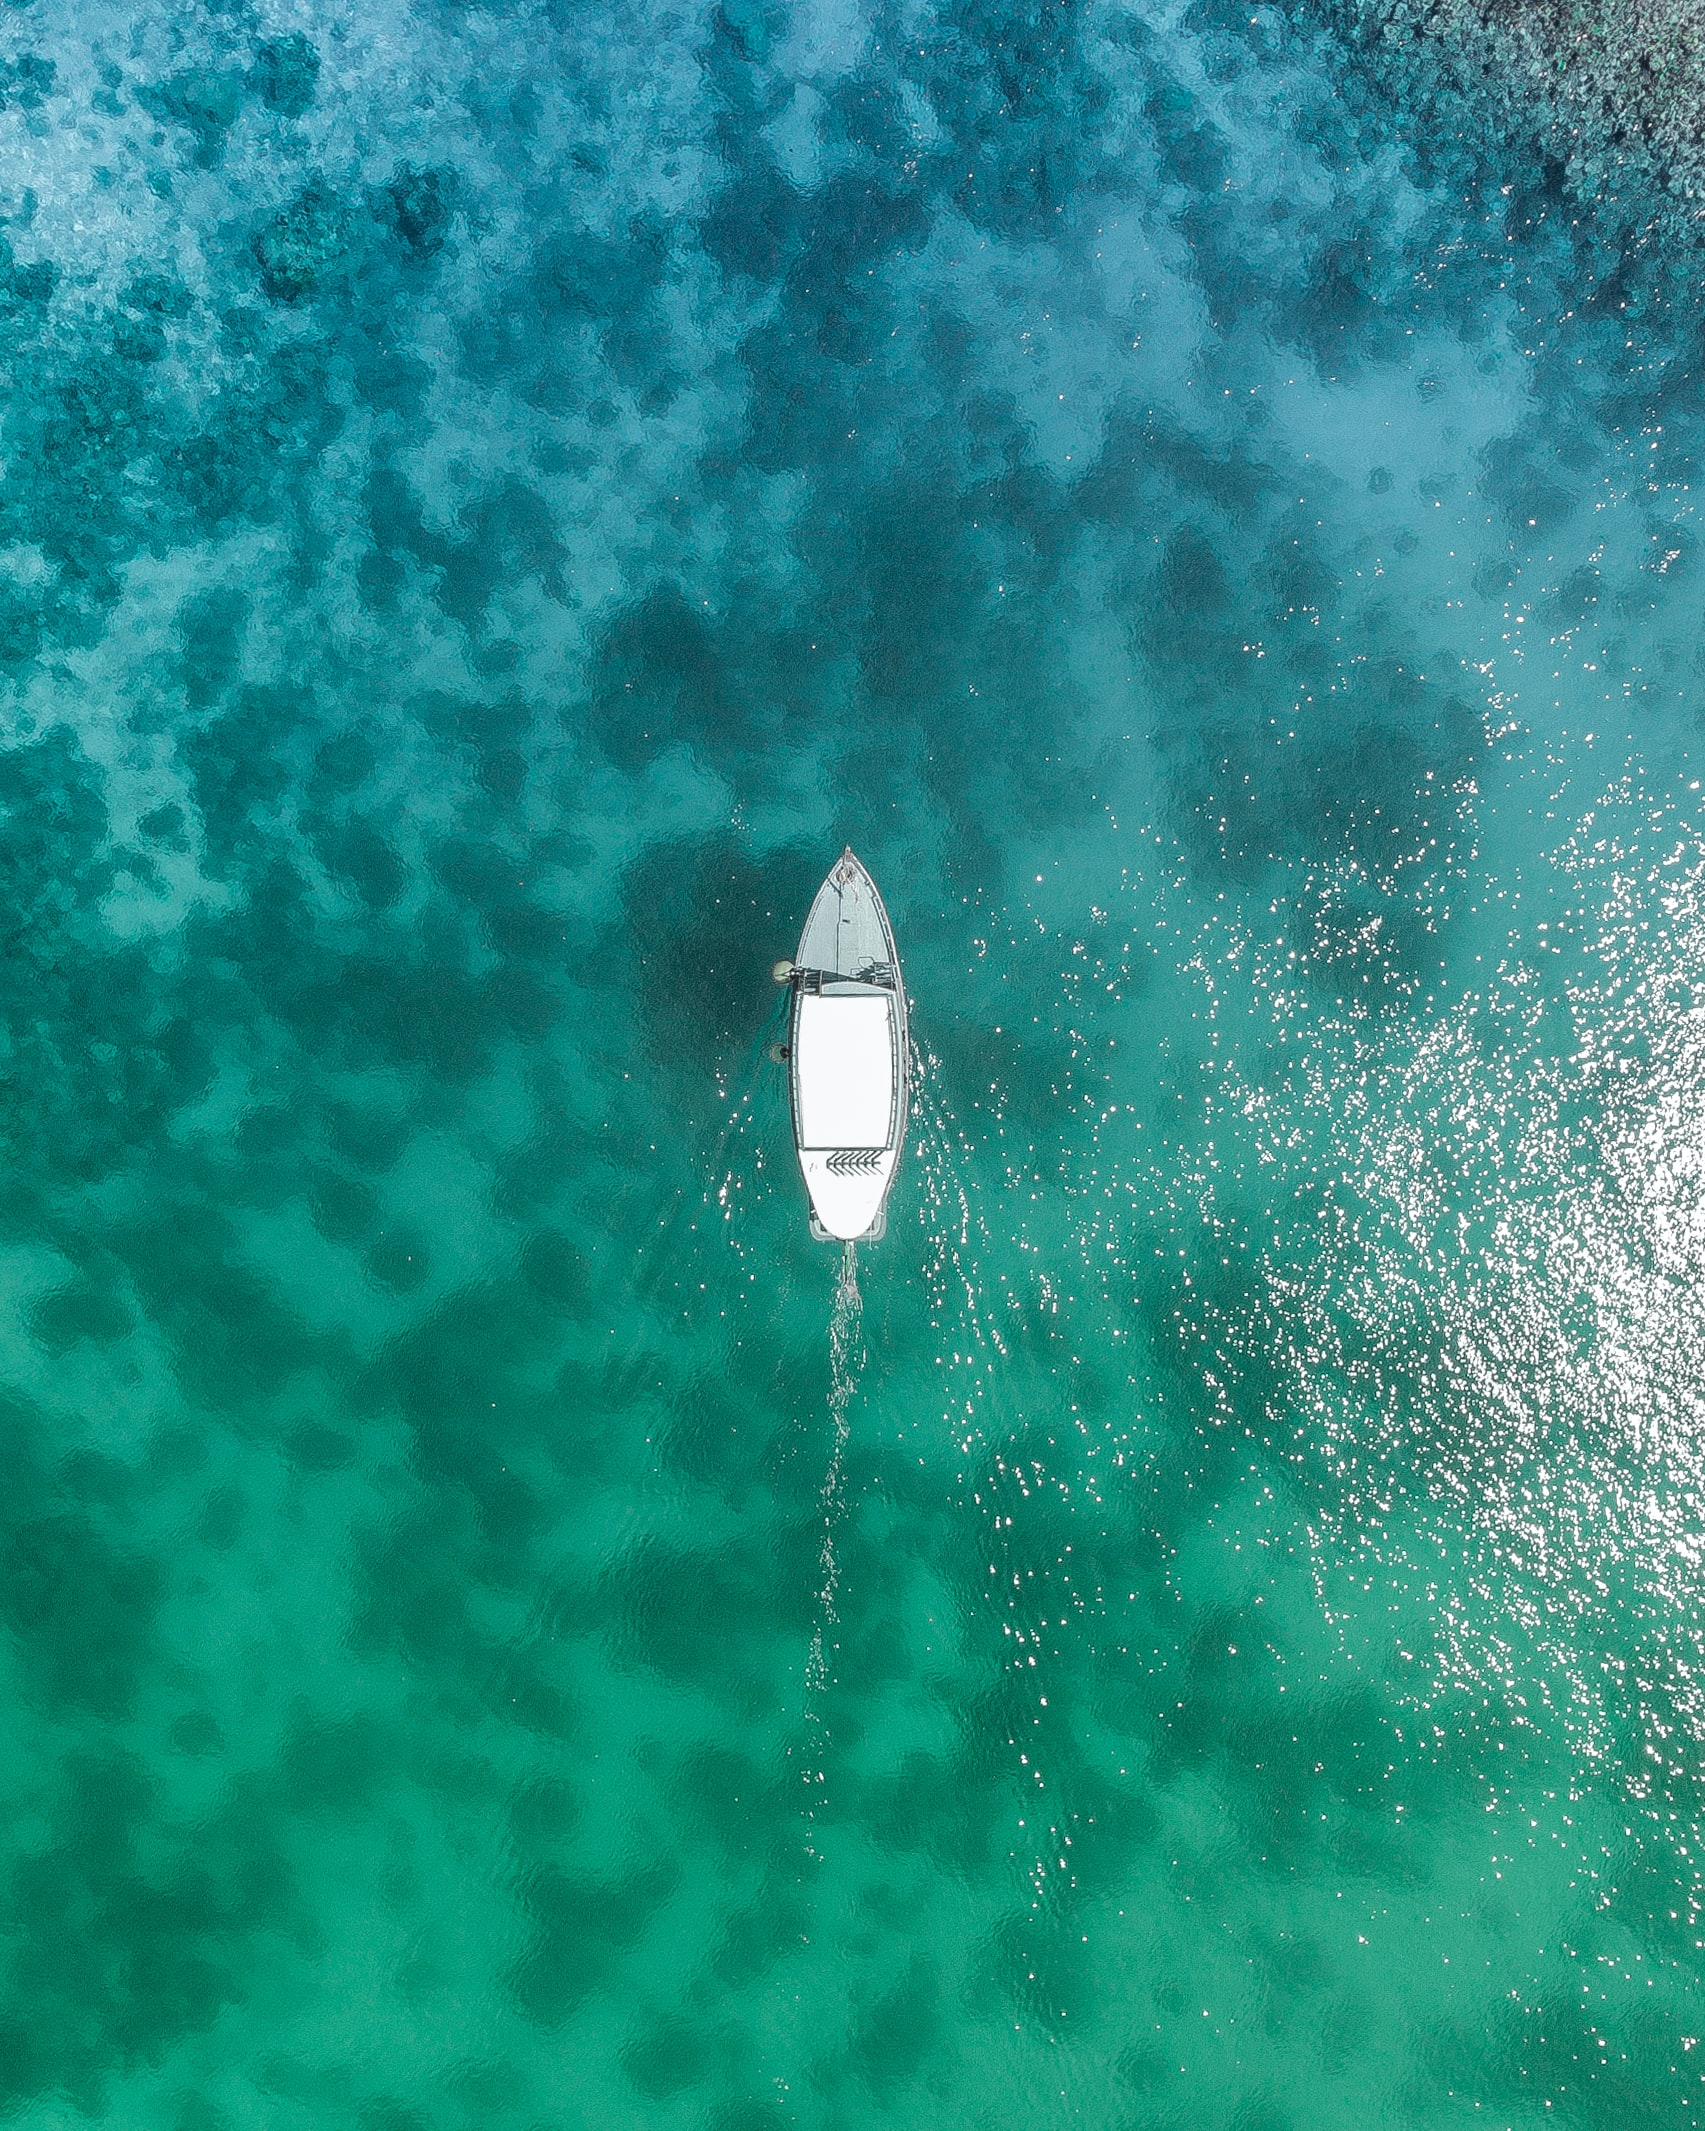 Boat in the middle of the ocean.